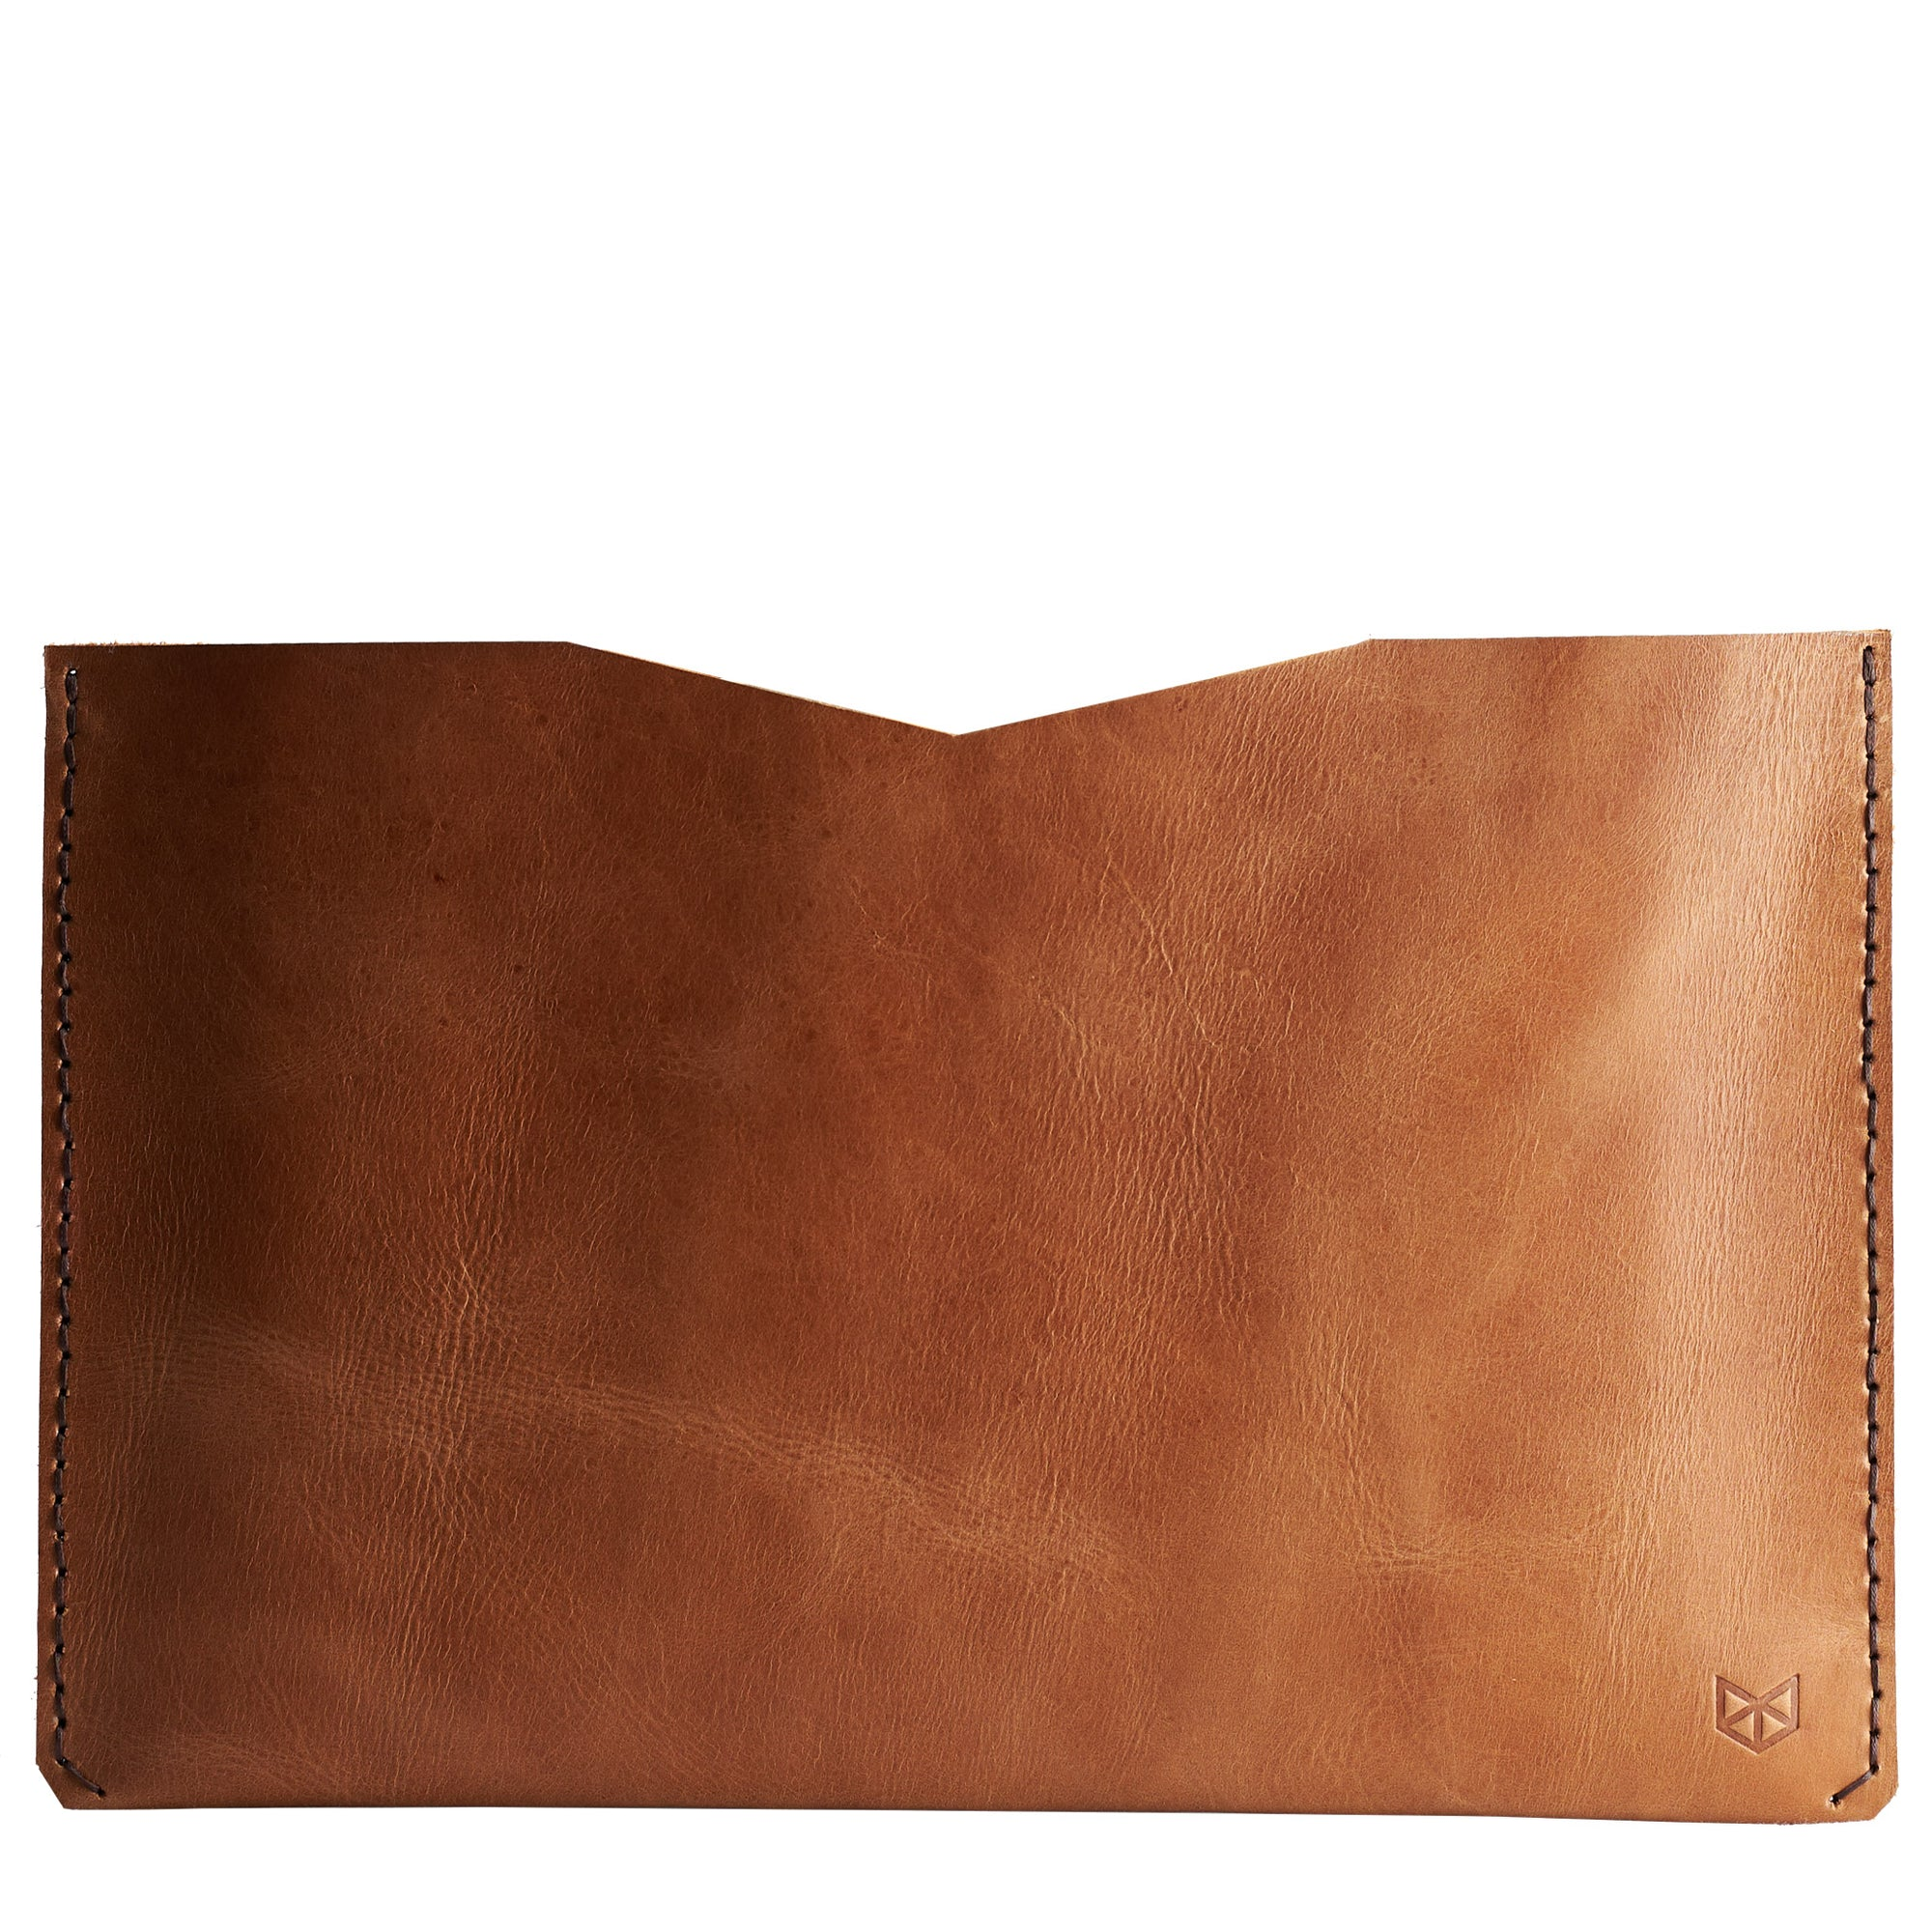 Leather Lenovo Yoga Thinkpad light brown sleeve